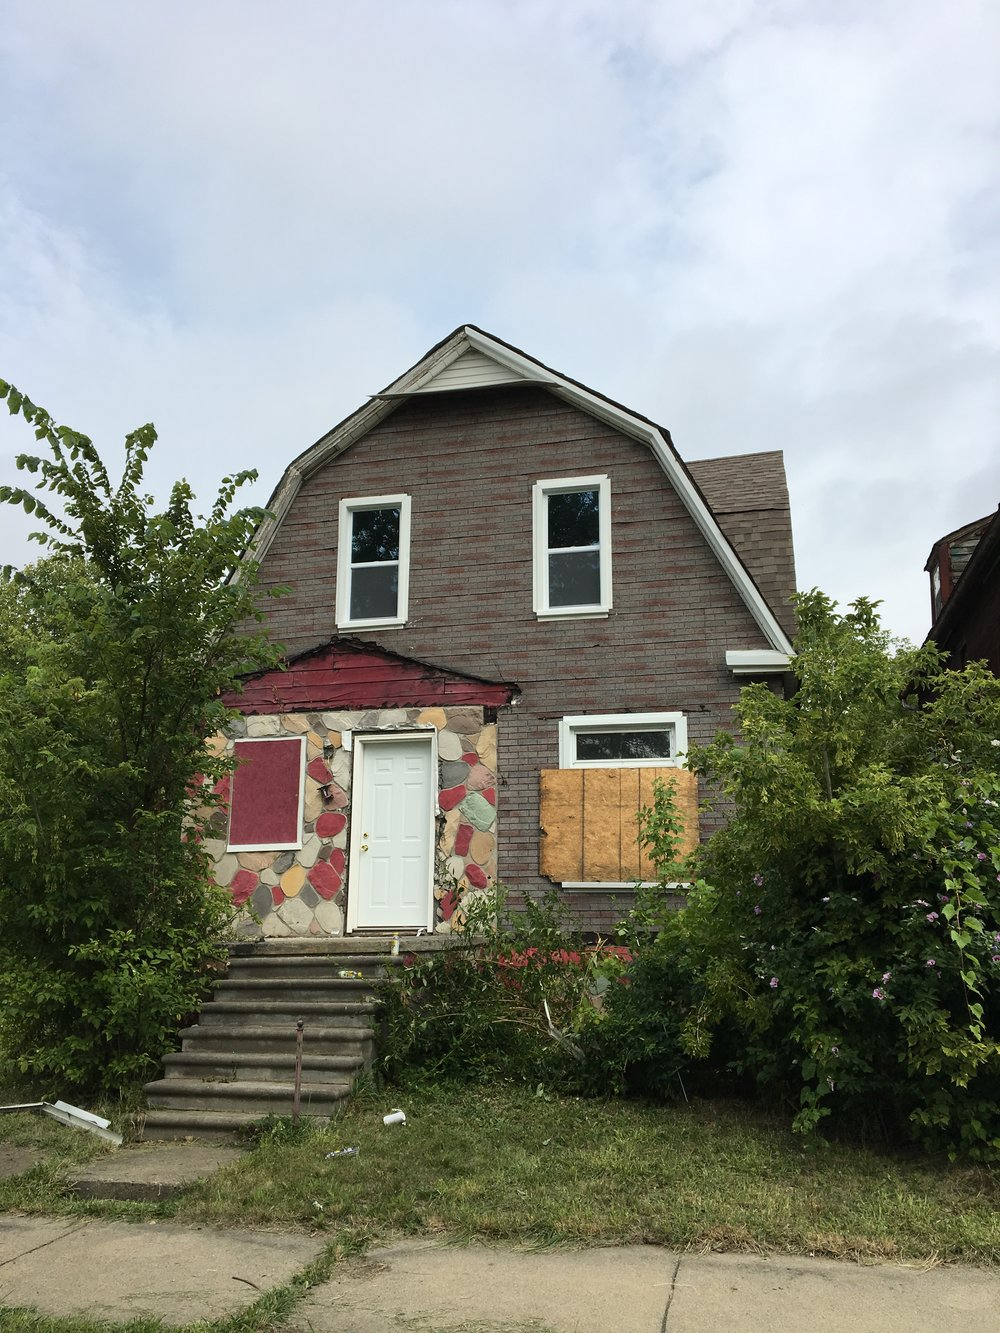 The Fourth Write A House - With new windows and new doors, this home has just started renovations. We aim to replace the siding and the electrical in the next two months.